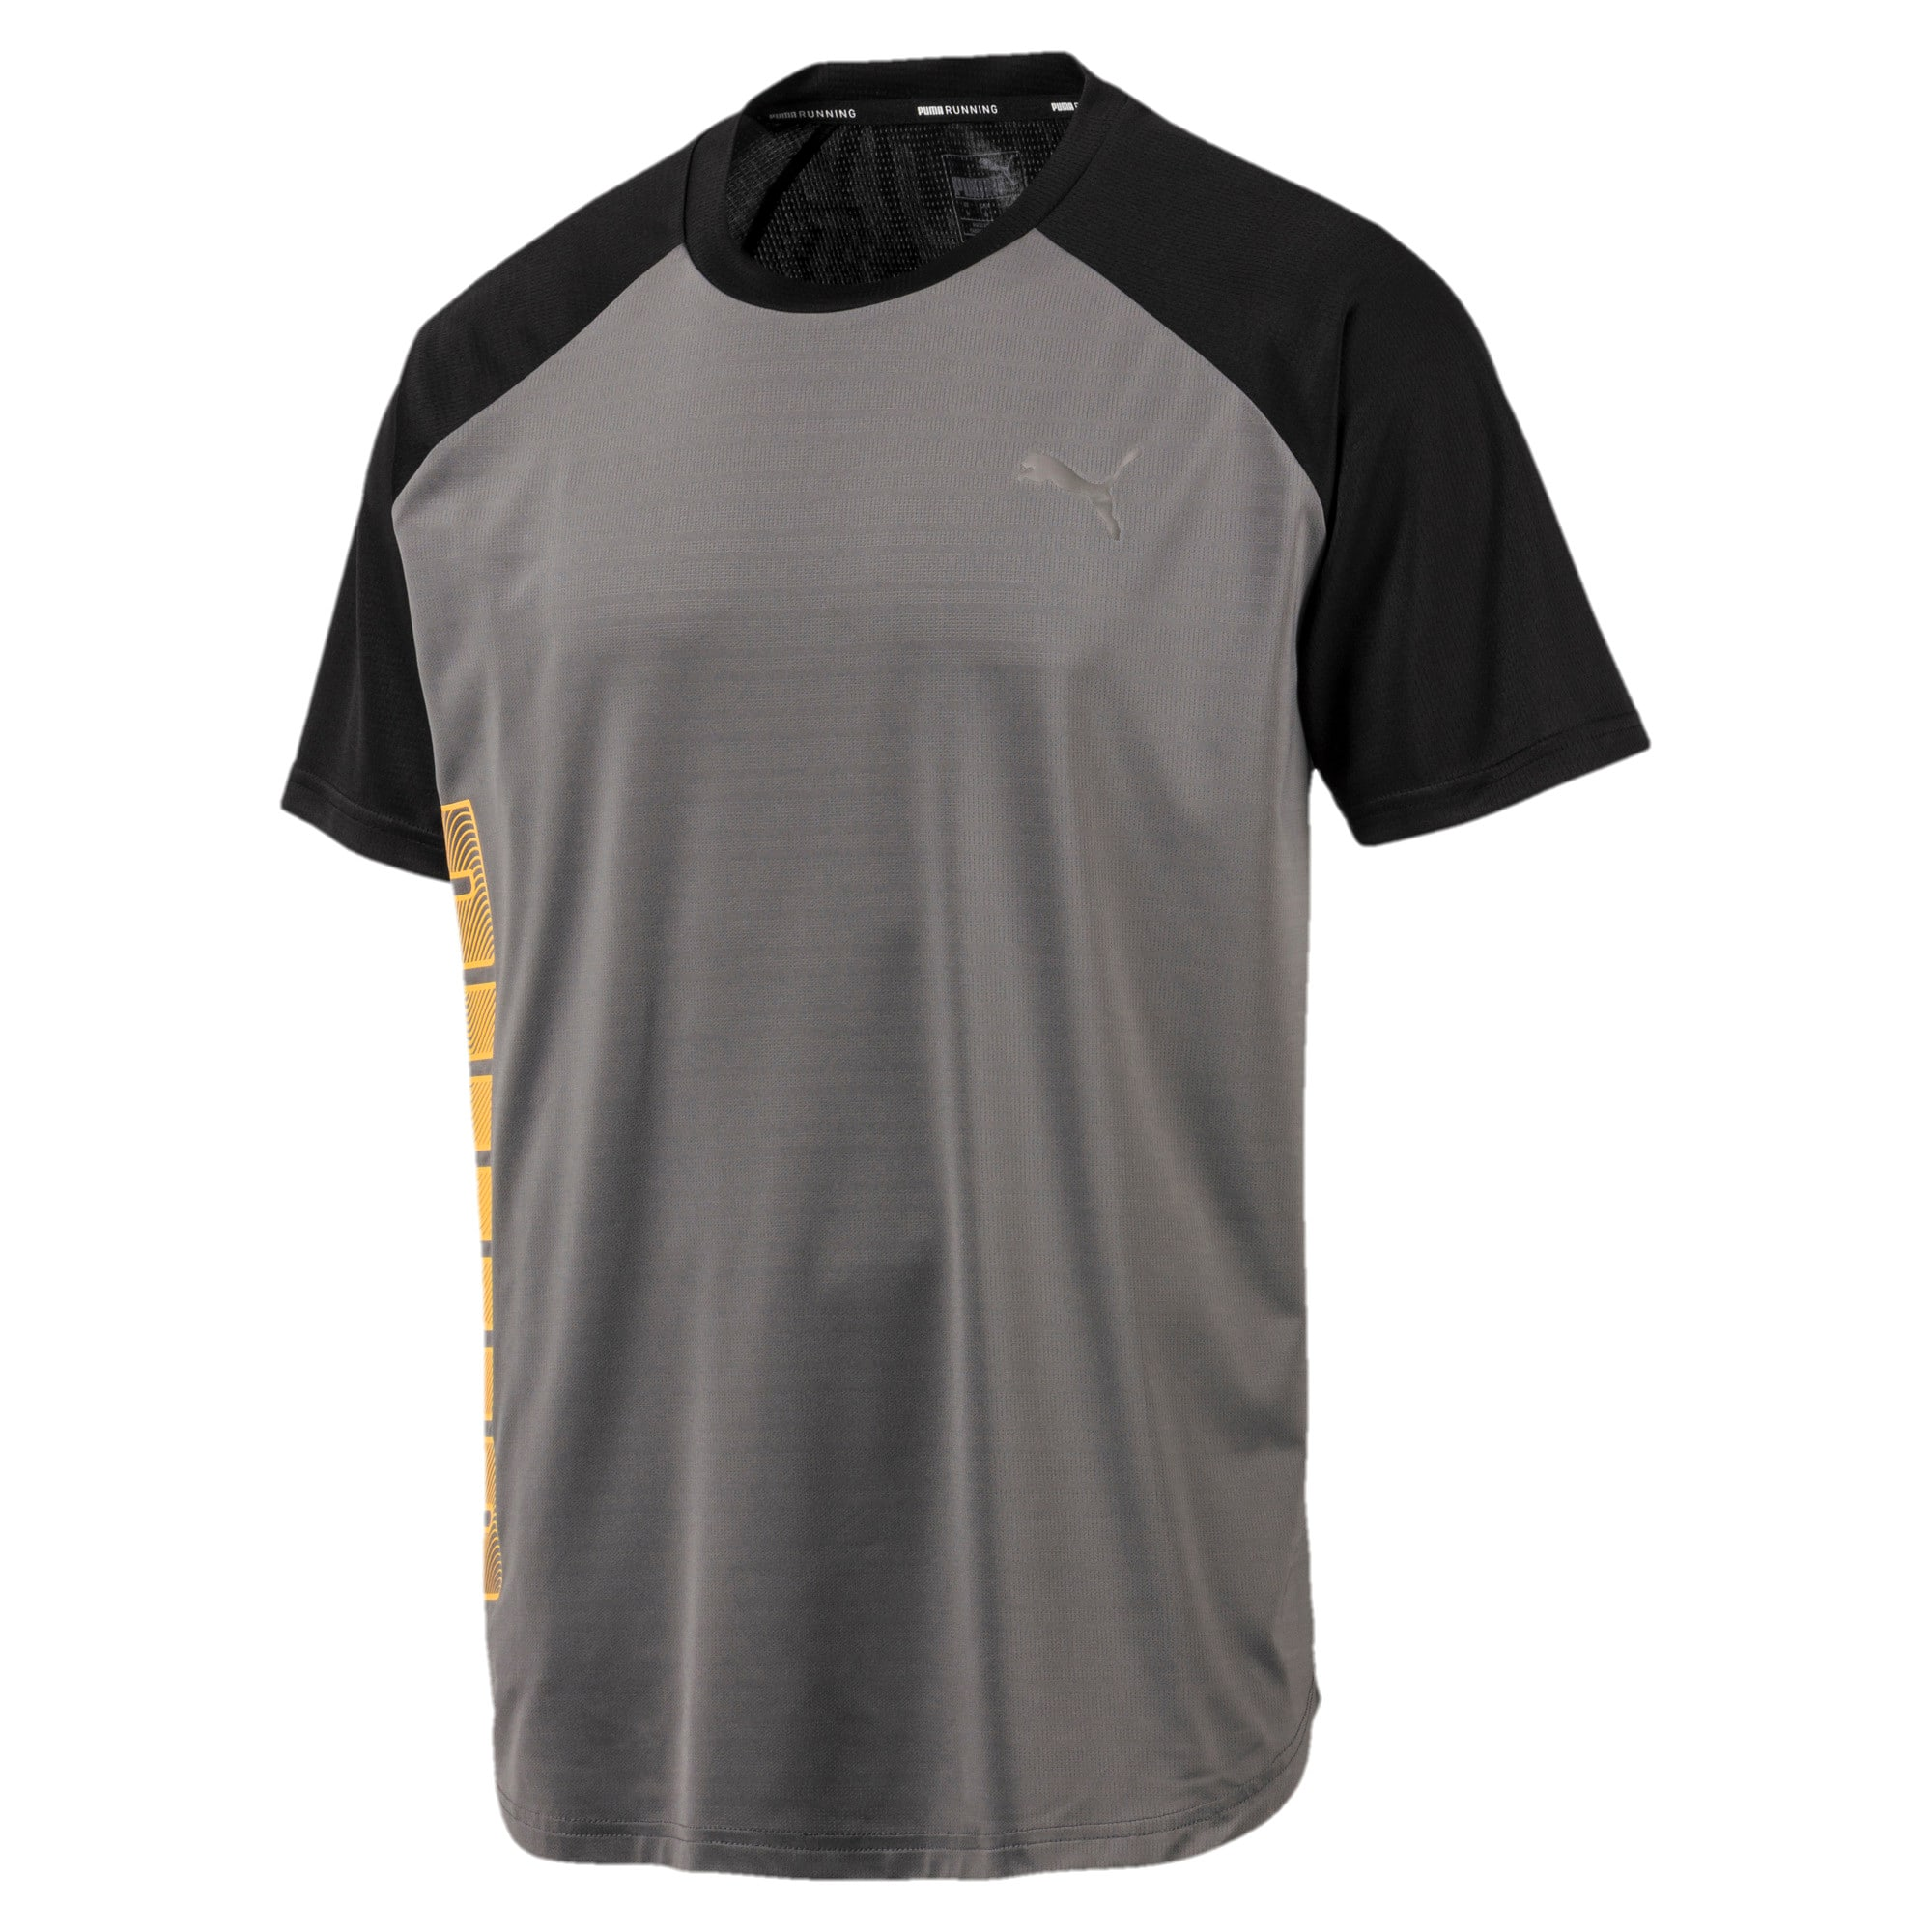 Thumbnail 4 of Collective Loud Men's Tee, CASTLEROCK-Puma Black, medium